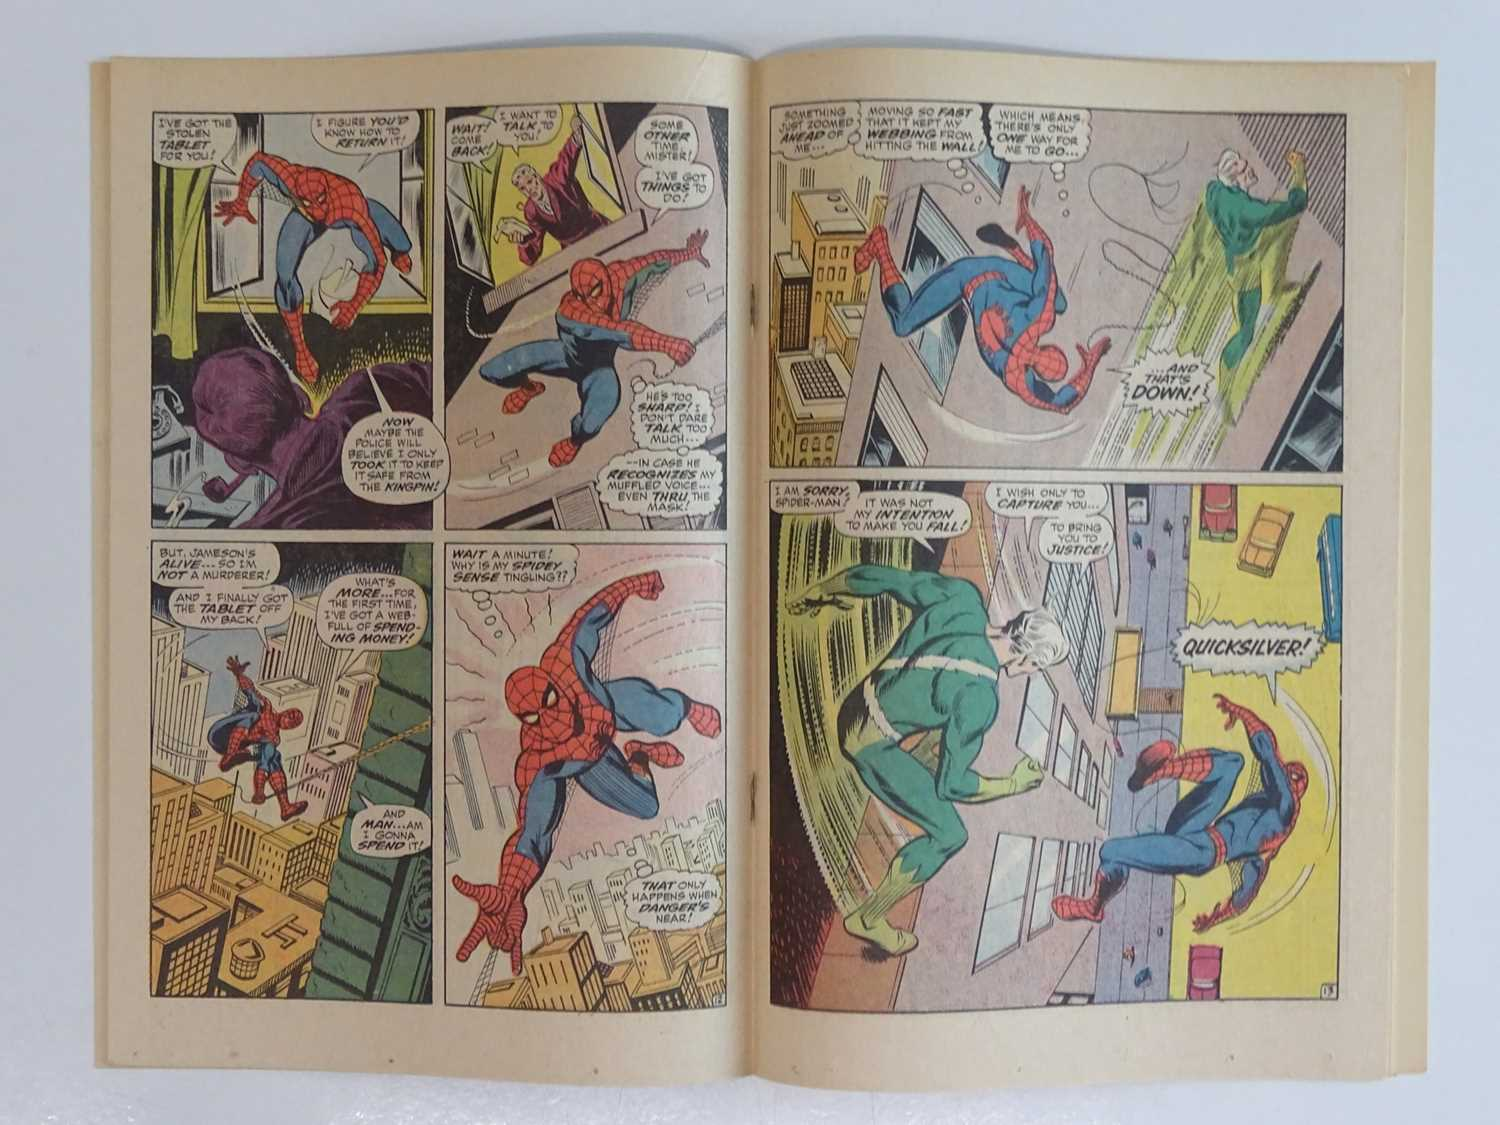 AMAZING SPIDER-MAN #71 - (1969 - MARVEL) - Quicksilver, Scarlet Witch, Toad appearances - John - Image 5 of 9